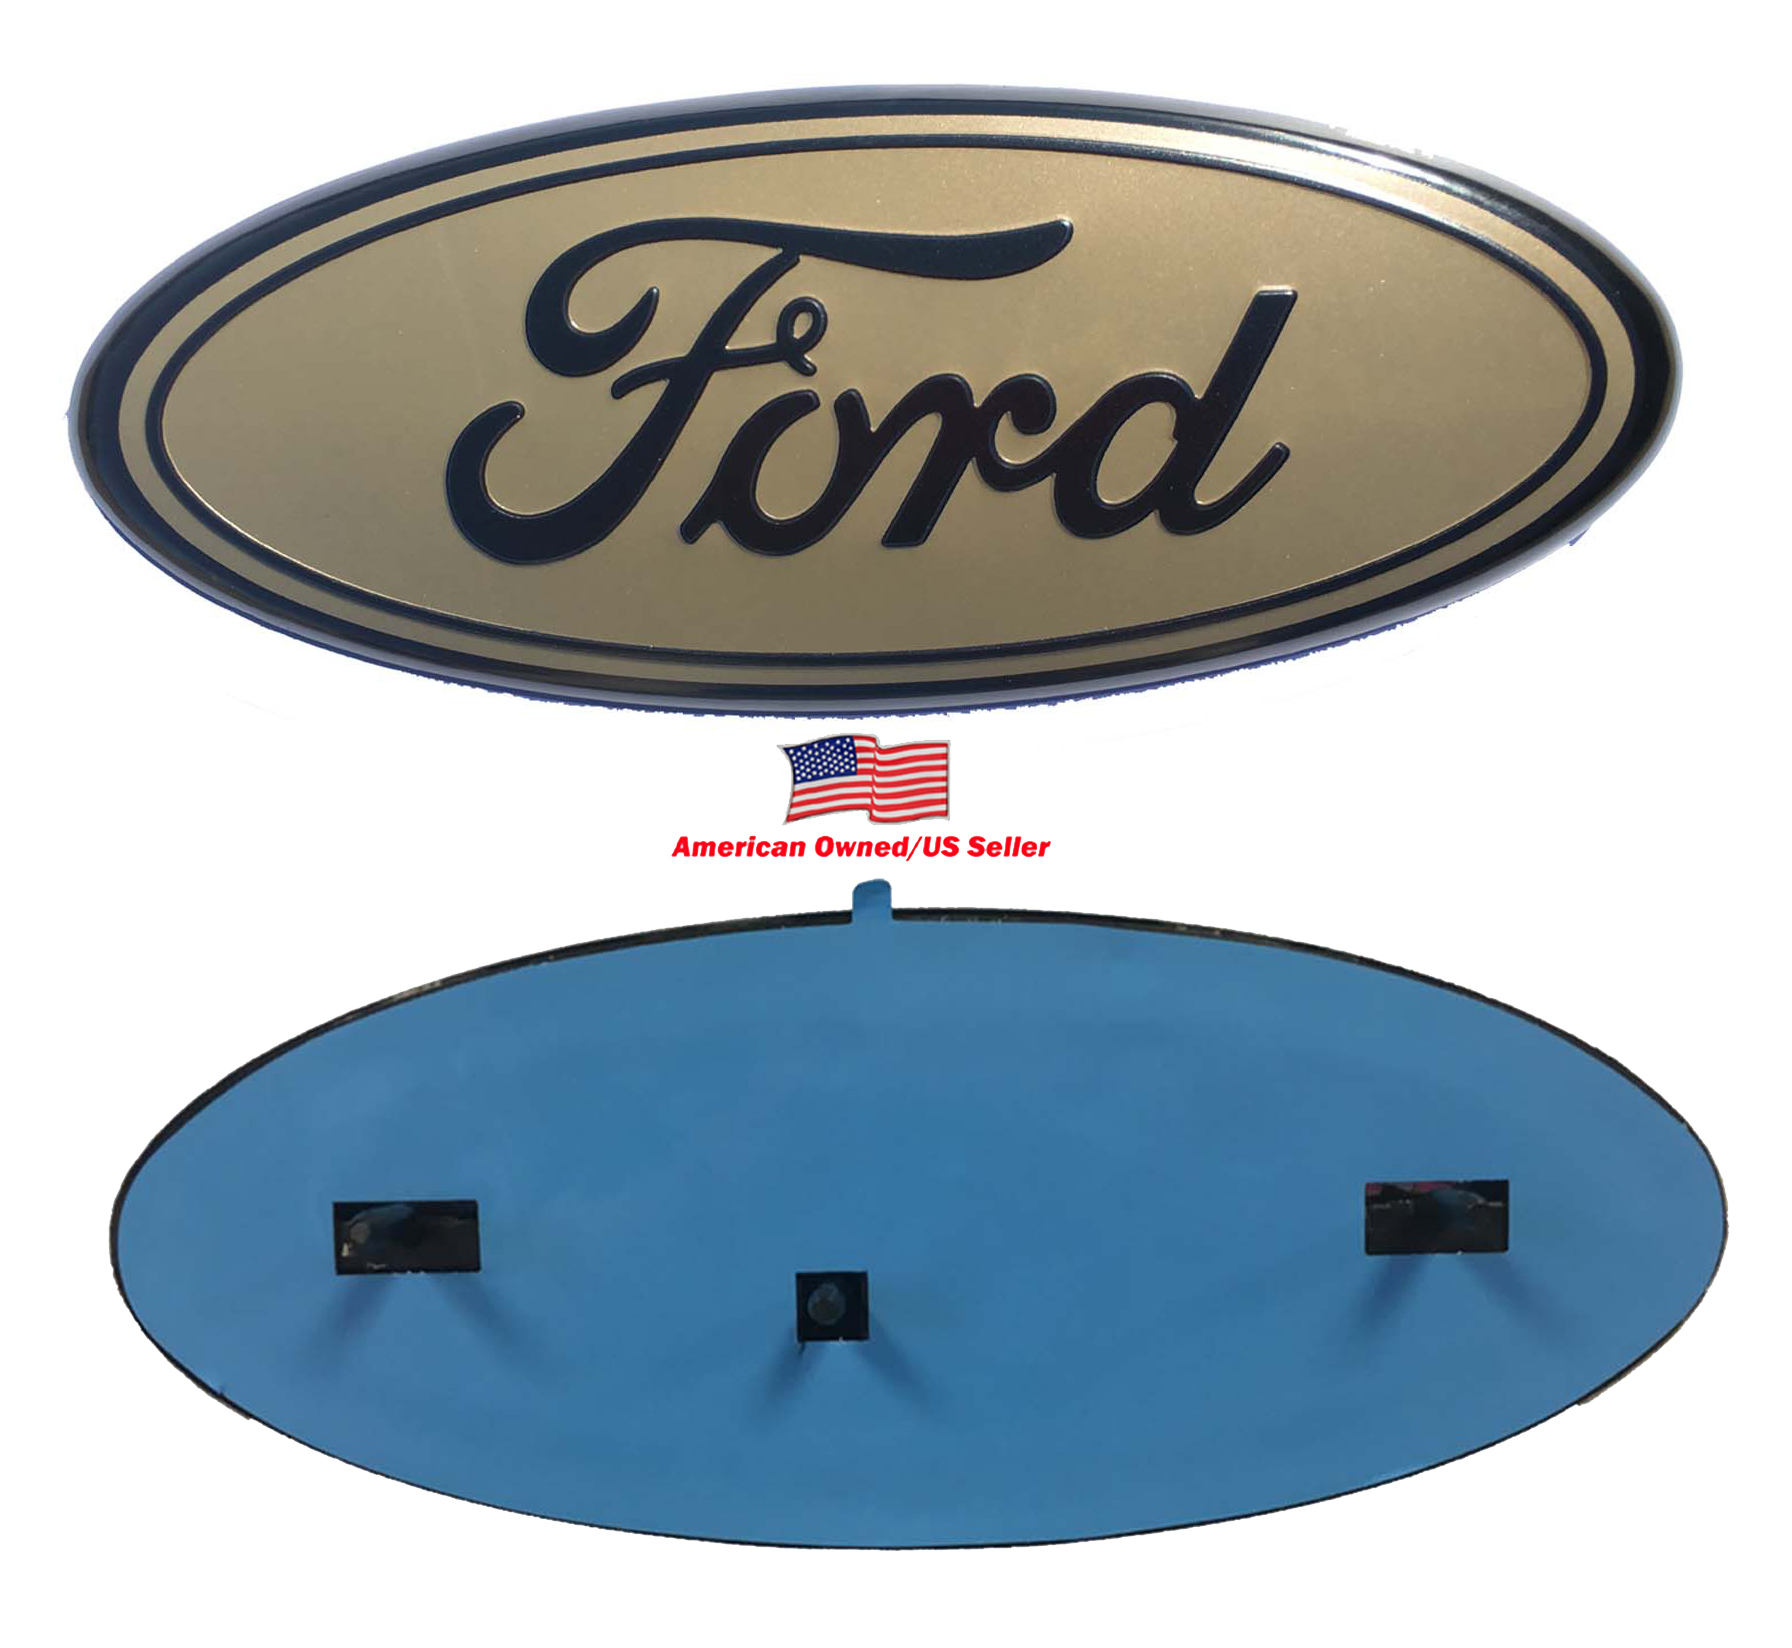 """2005-2014 Ford F150 GOLD BLACK Oval 9"""" X 3.5"""" Front Grille Replacement Badge Emblem Medallion Name Plate"""